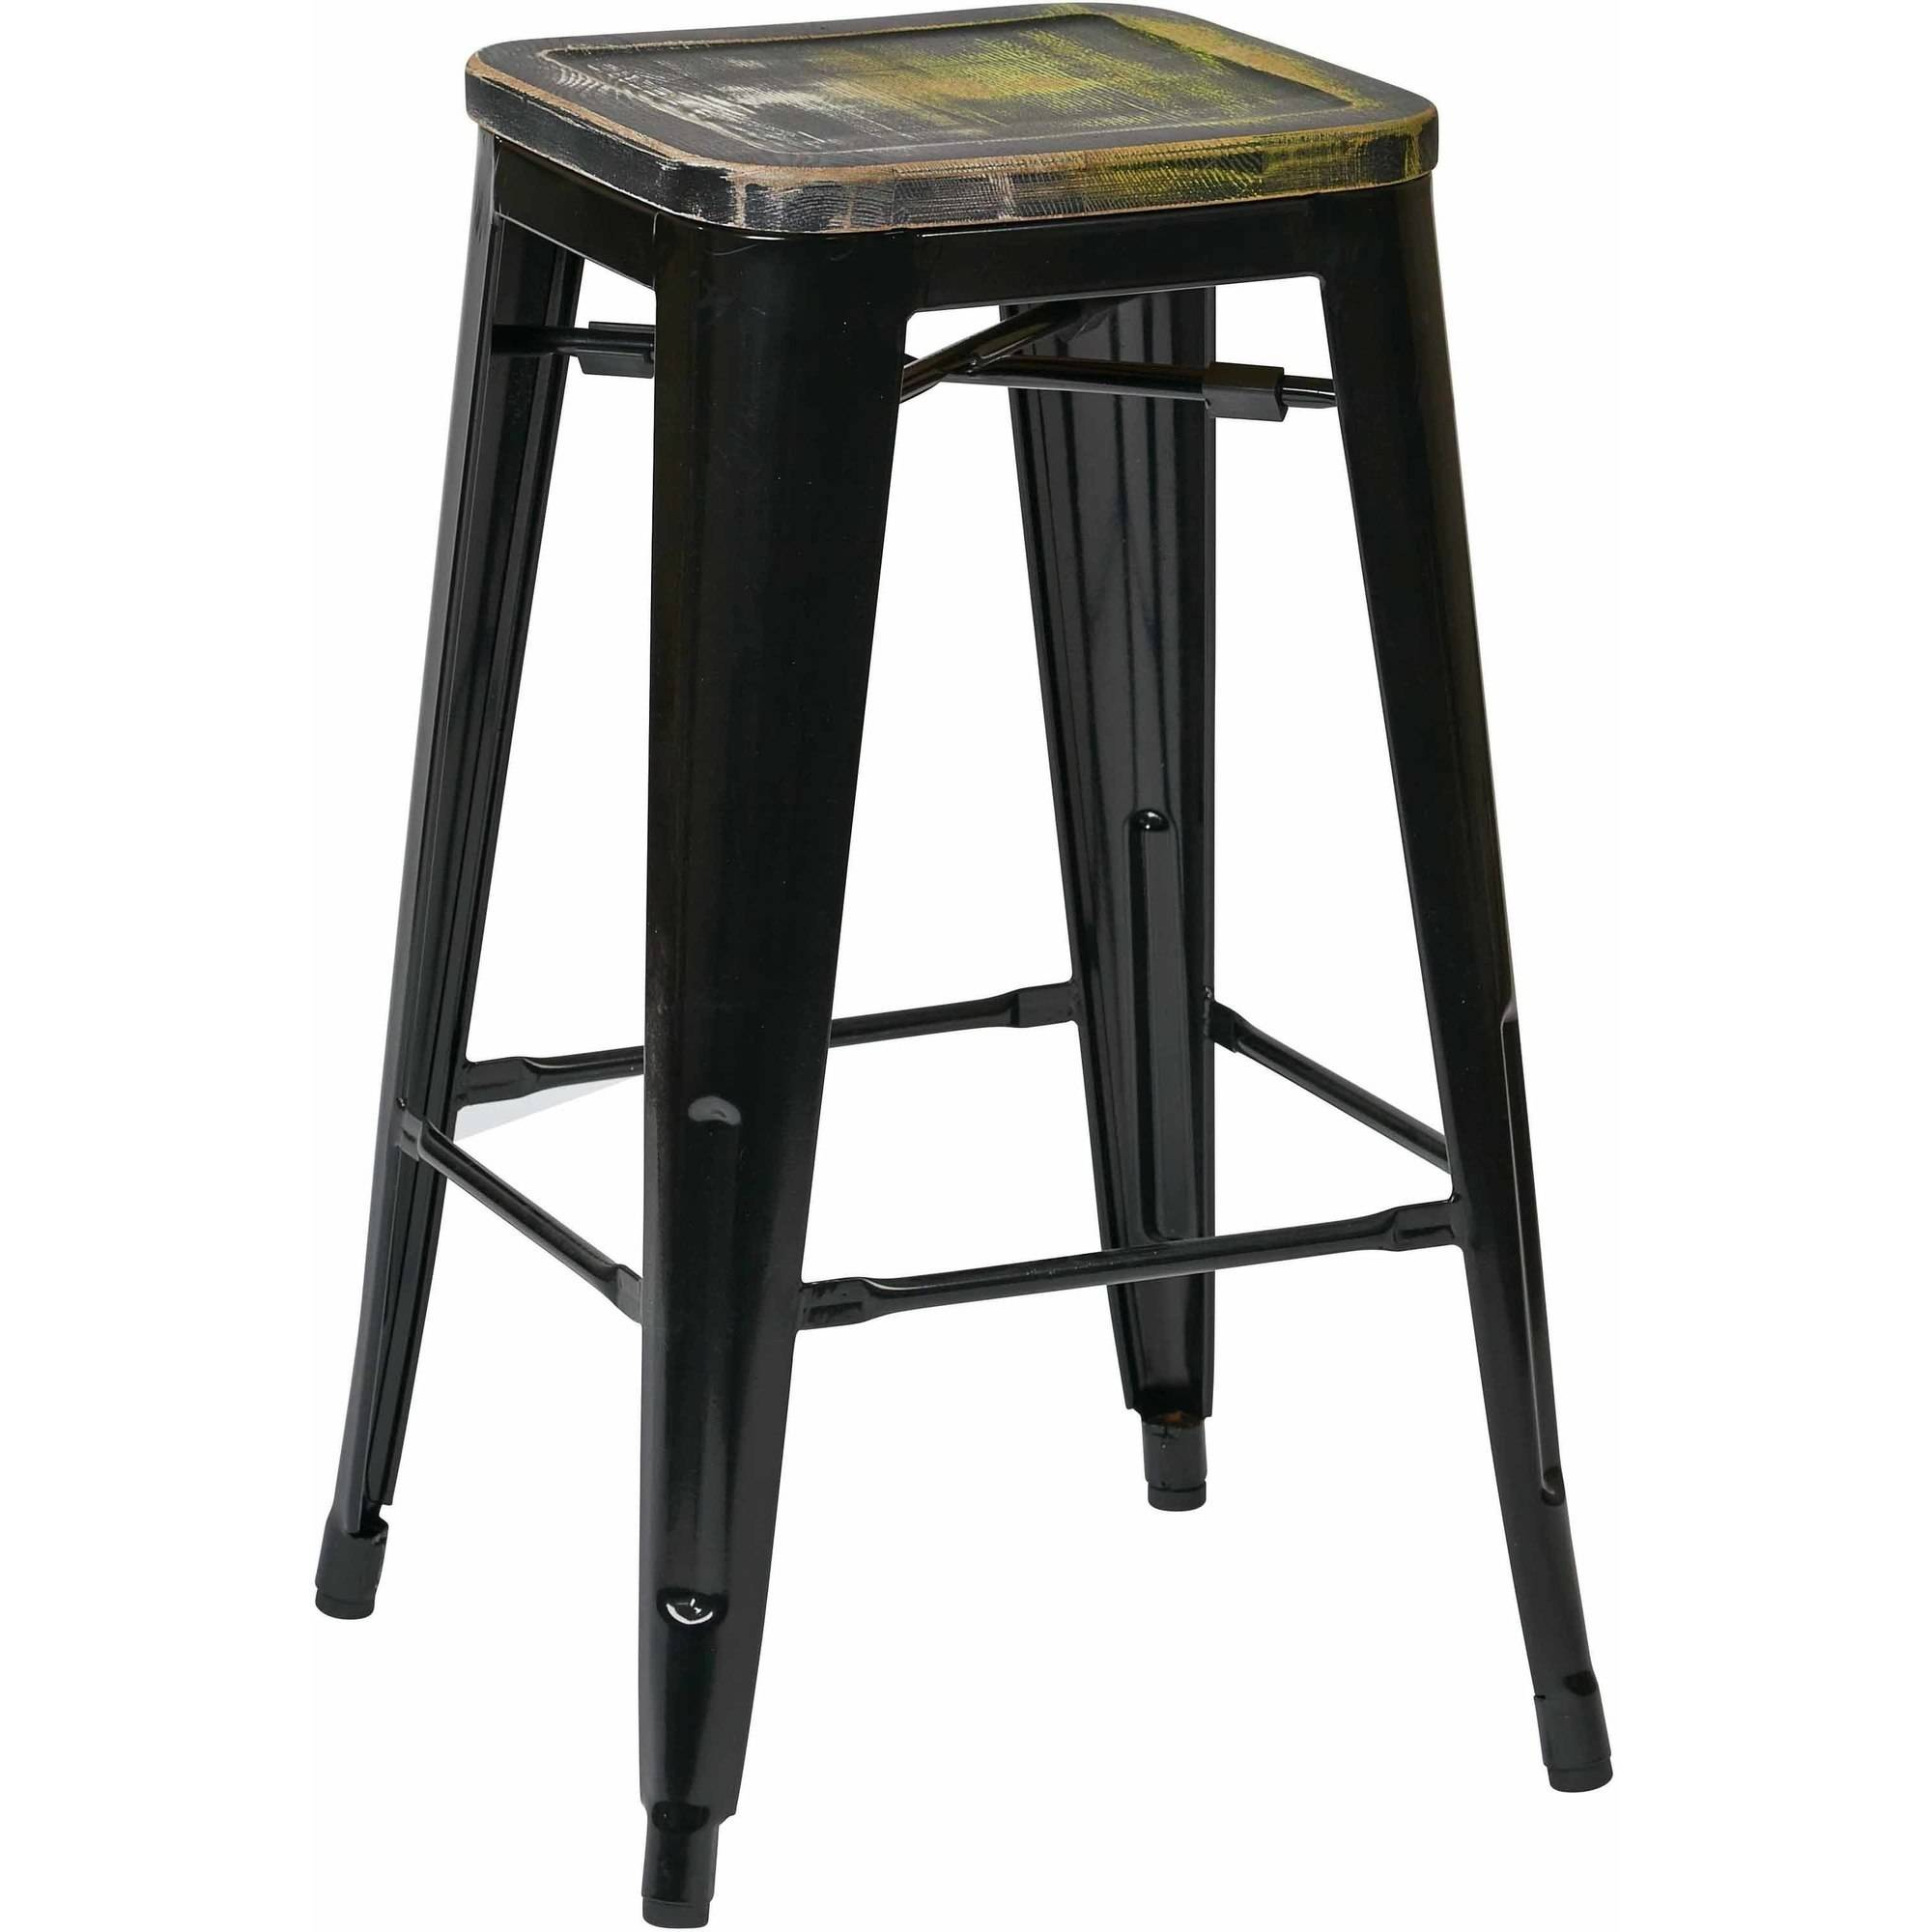 "Bristow 26"" Metal Barstool with Vintage Wood Seat, 4 Pack"